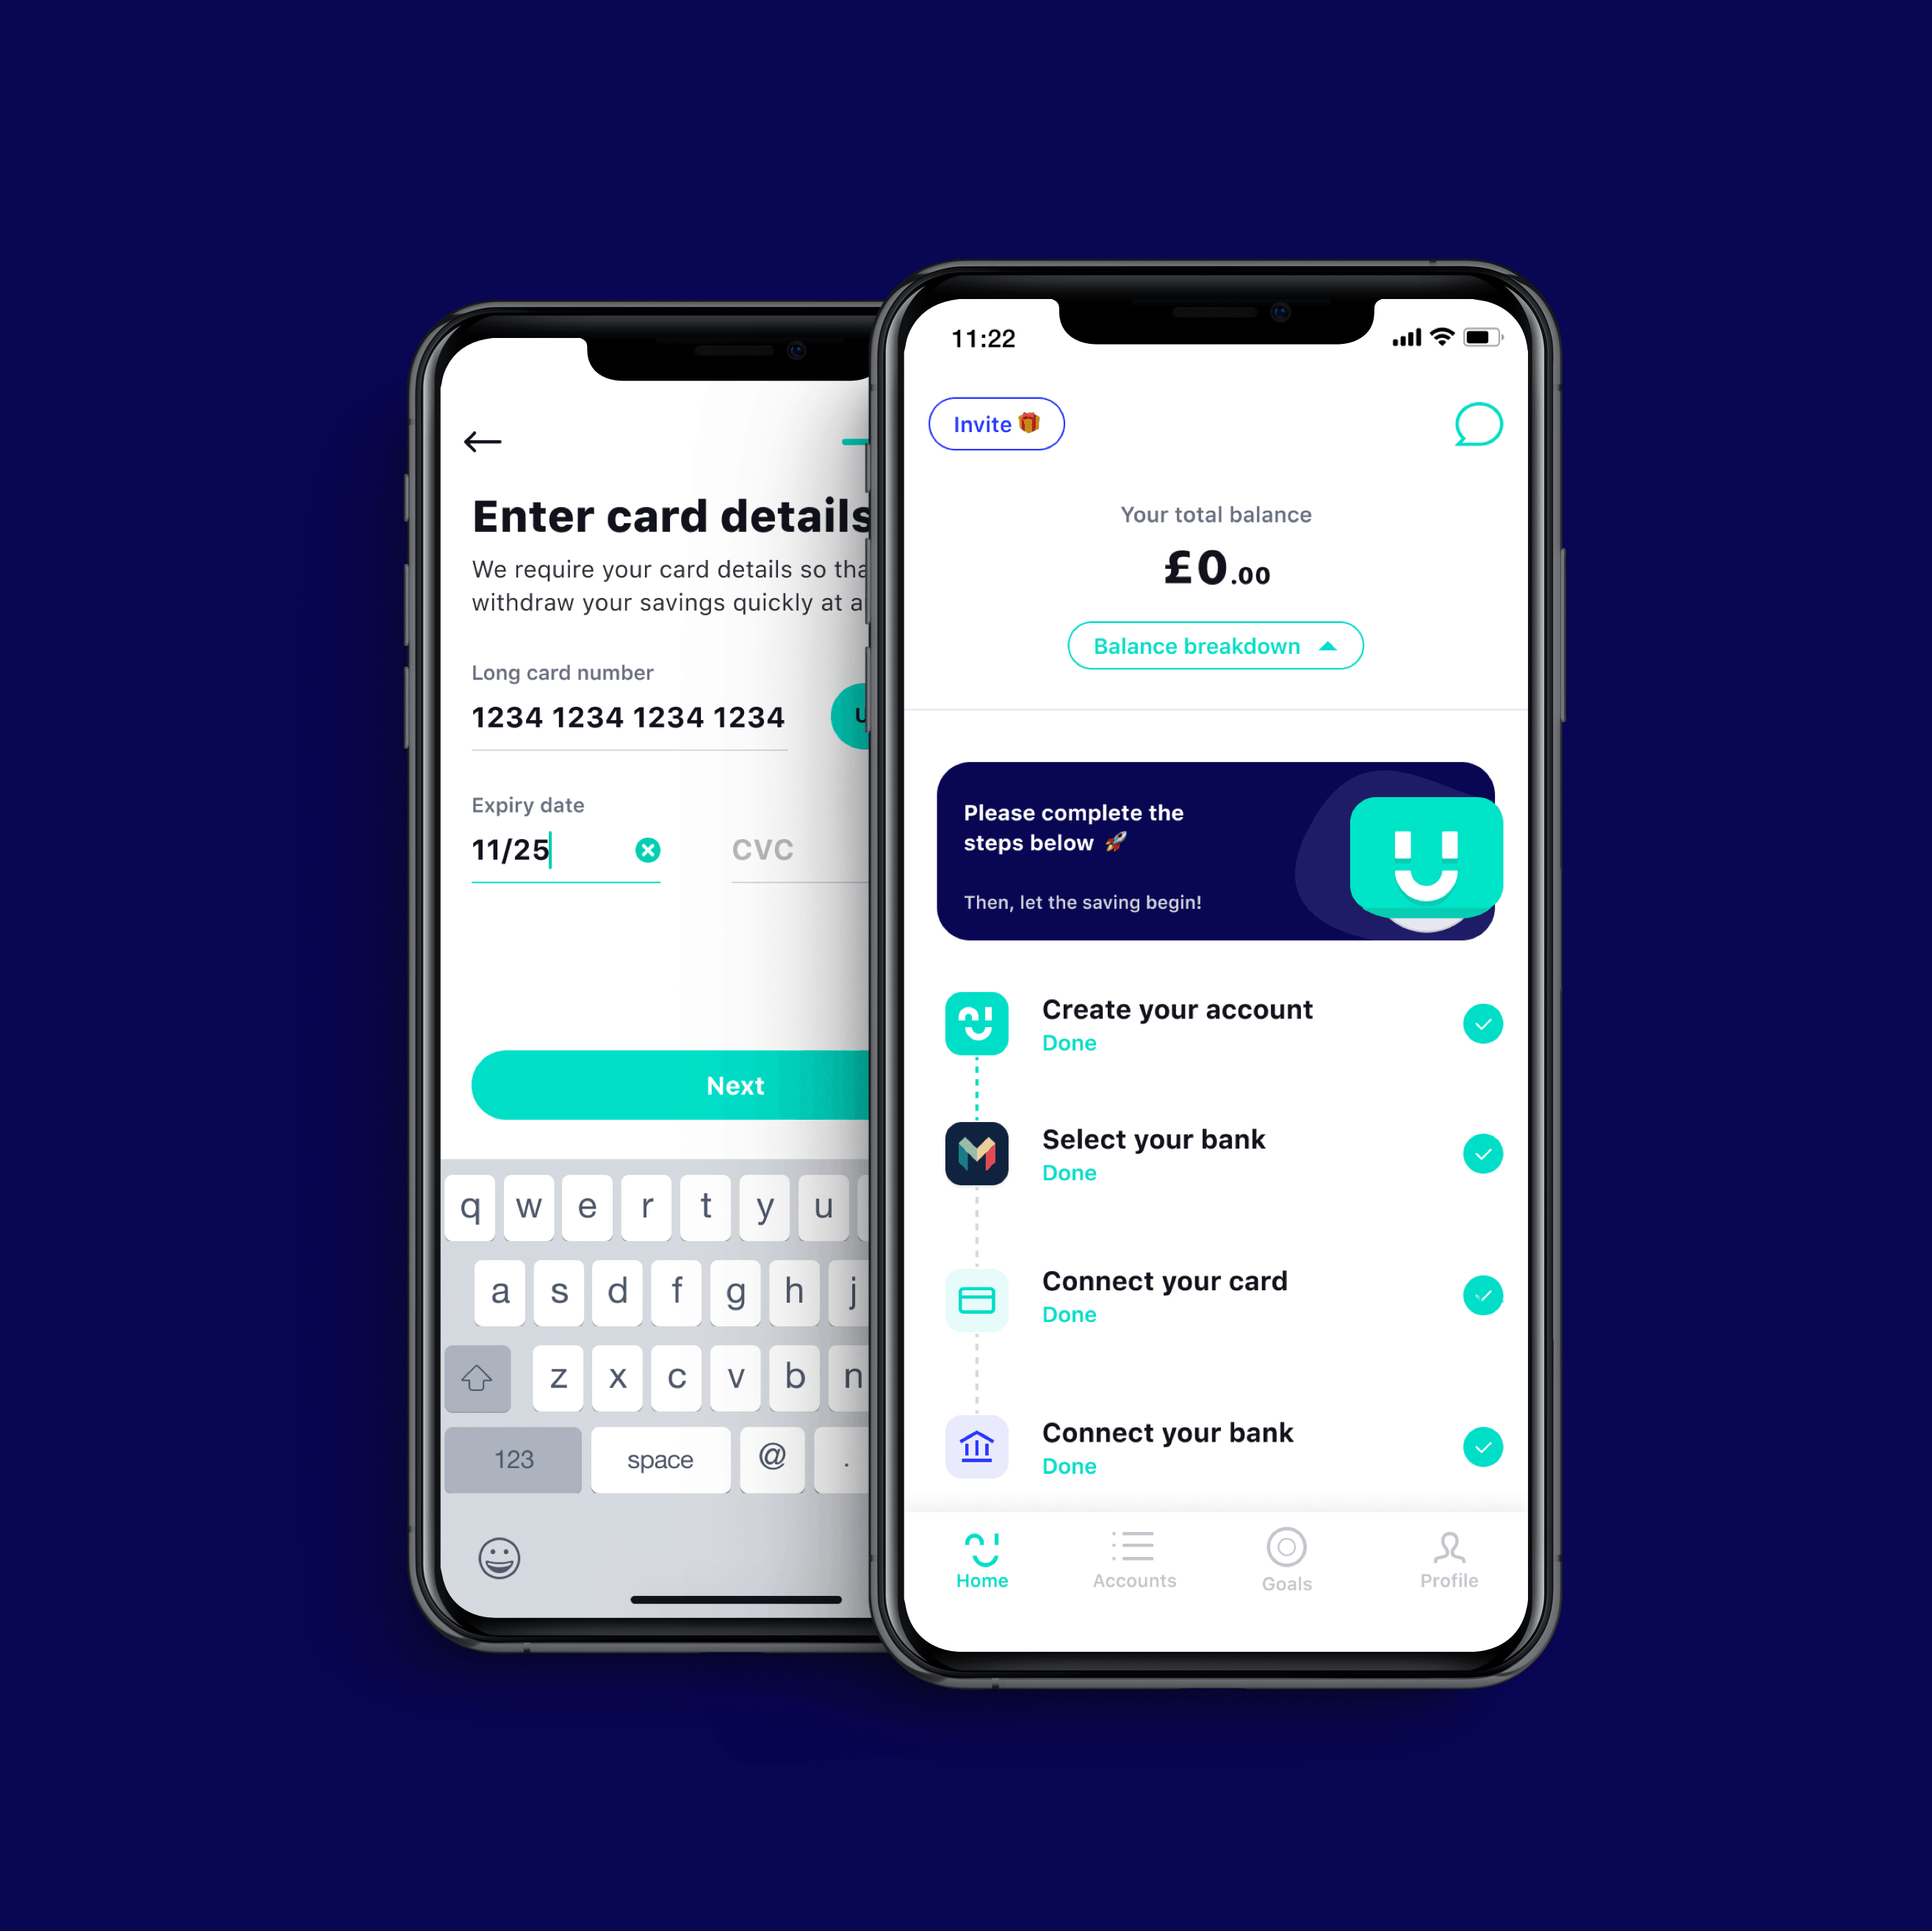 Access here alternative investment news about Savings App Chip Raises £10.7M In 48 Hours As Part Of Future Fund Round On Crowdcube